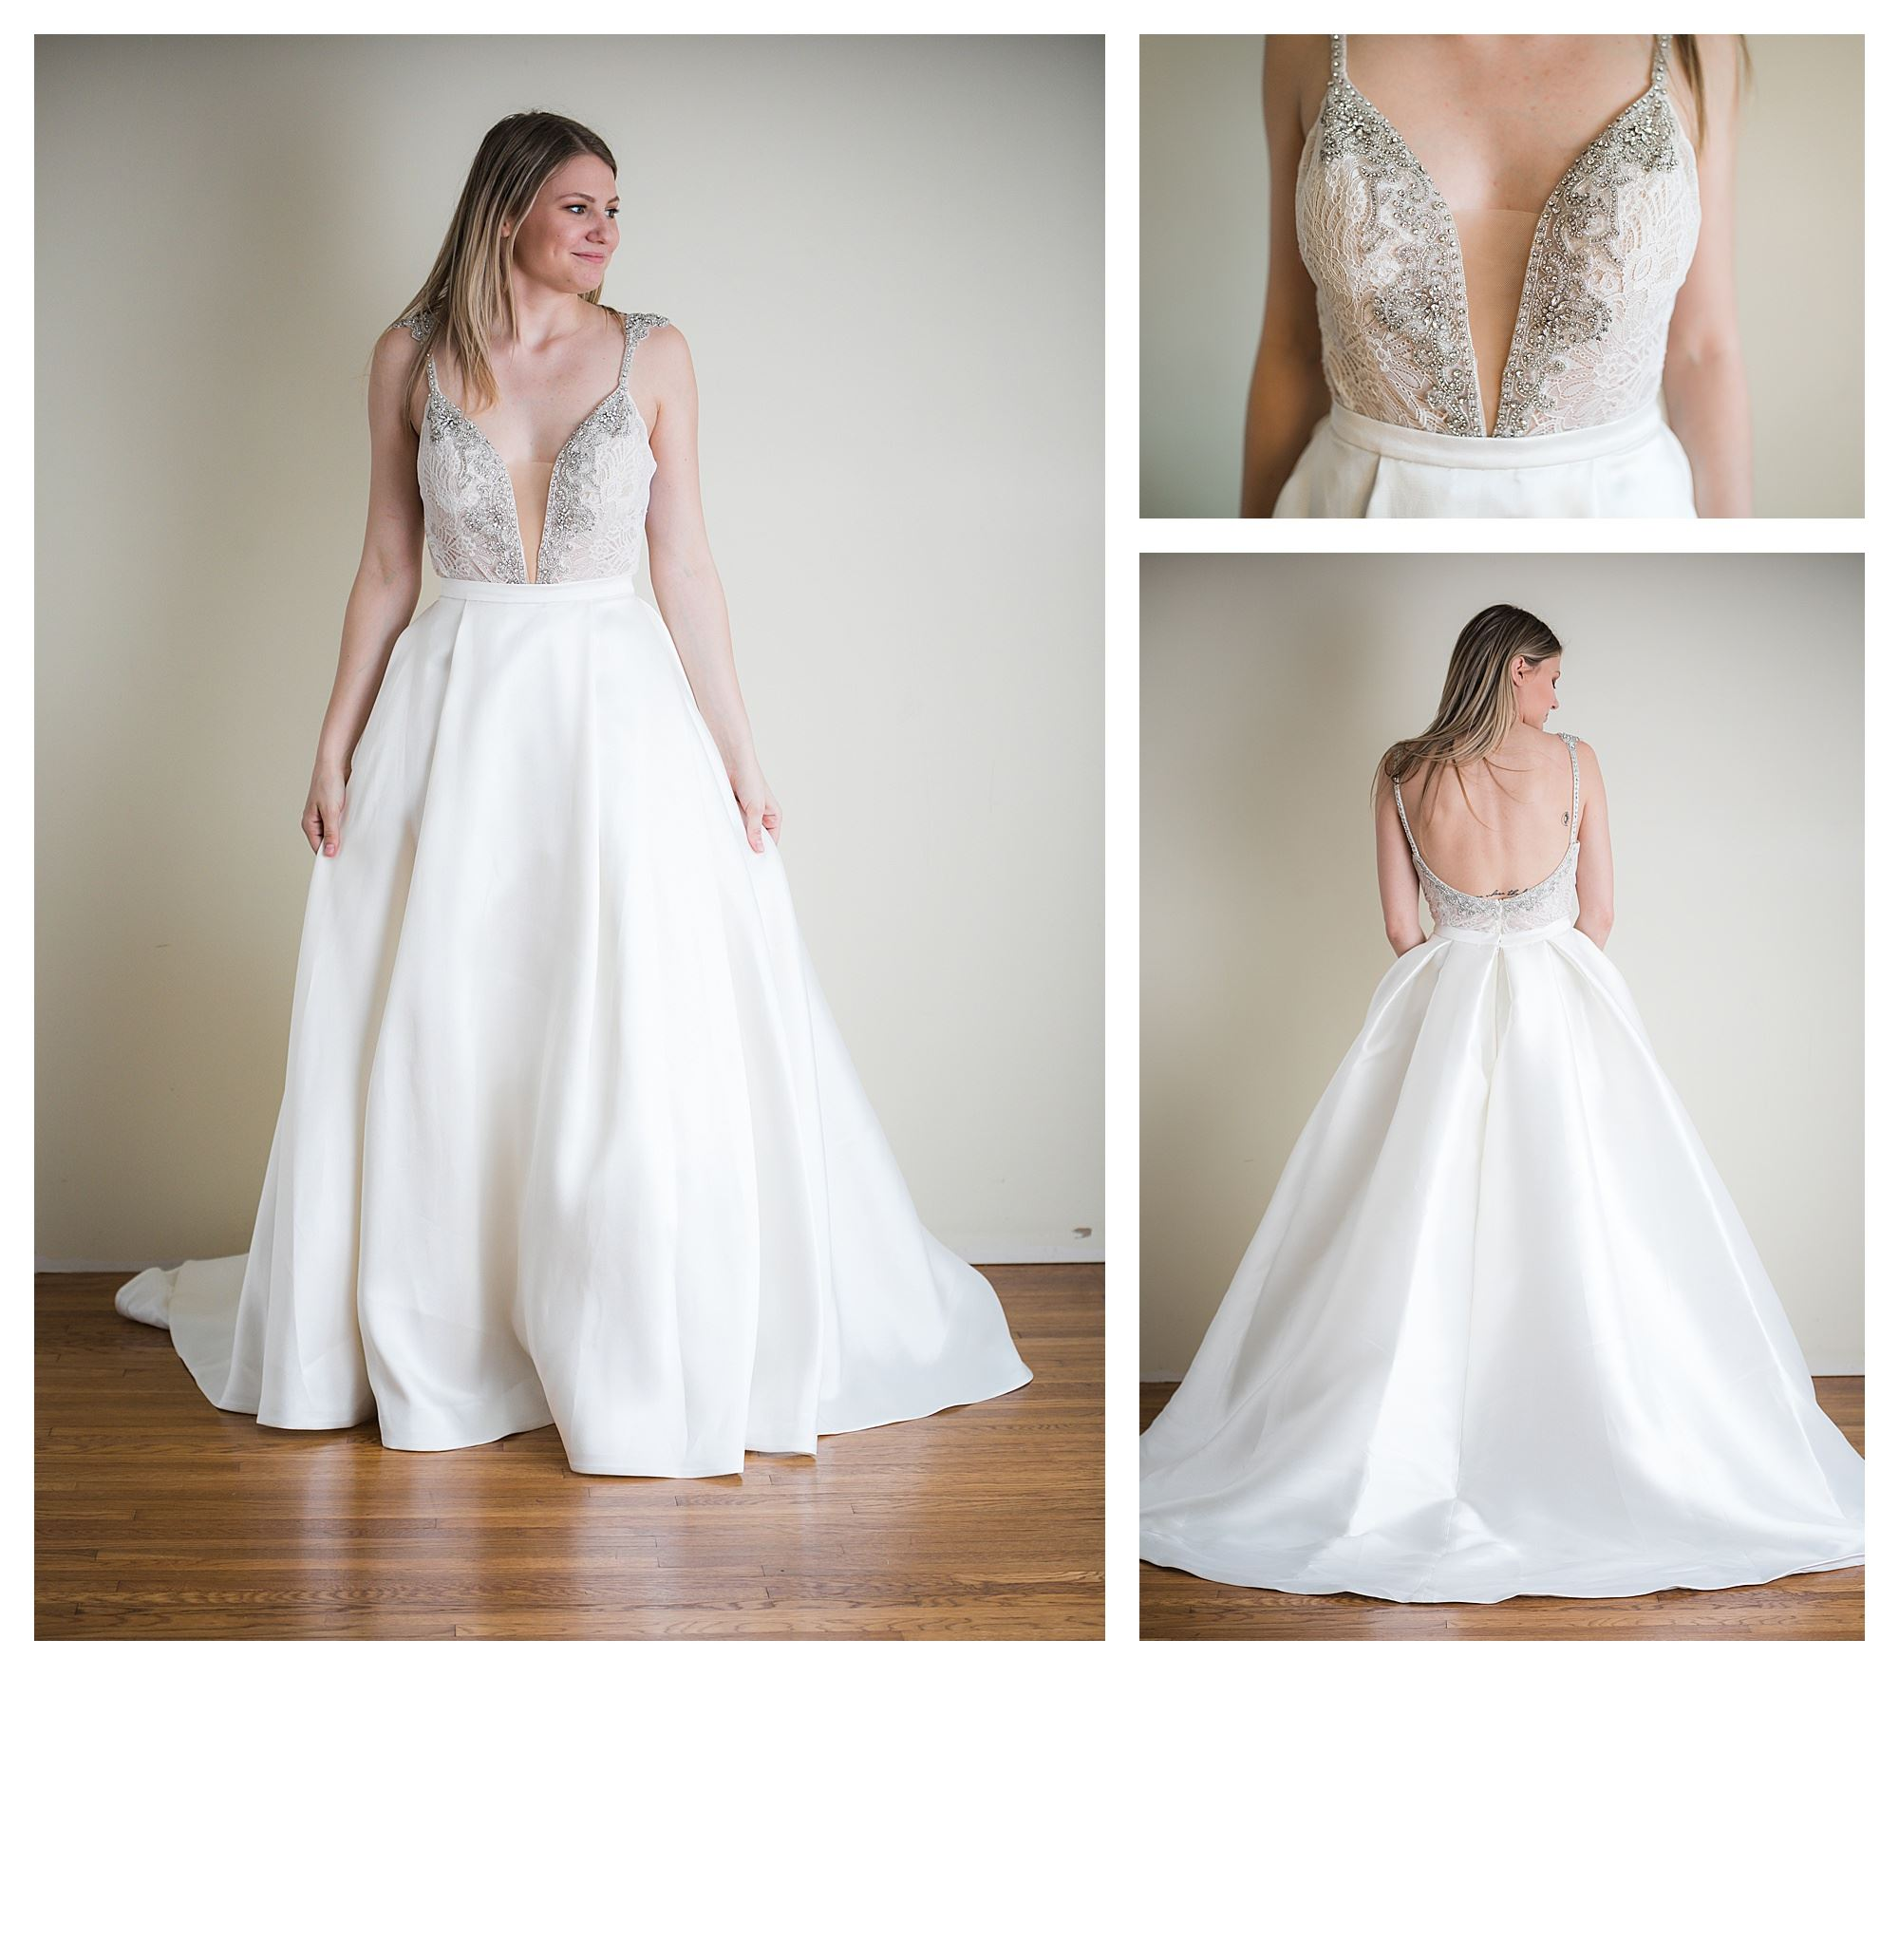 Sariah - Size 12 - Ivory/Nude - Originally priced $999 - Sample box price $699